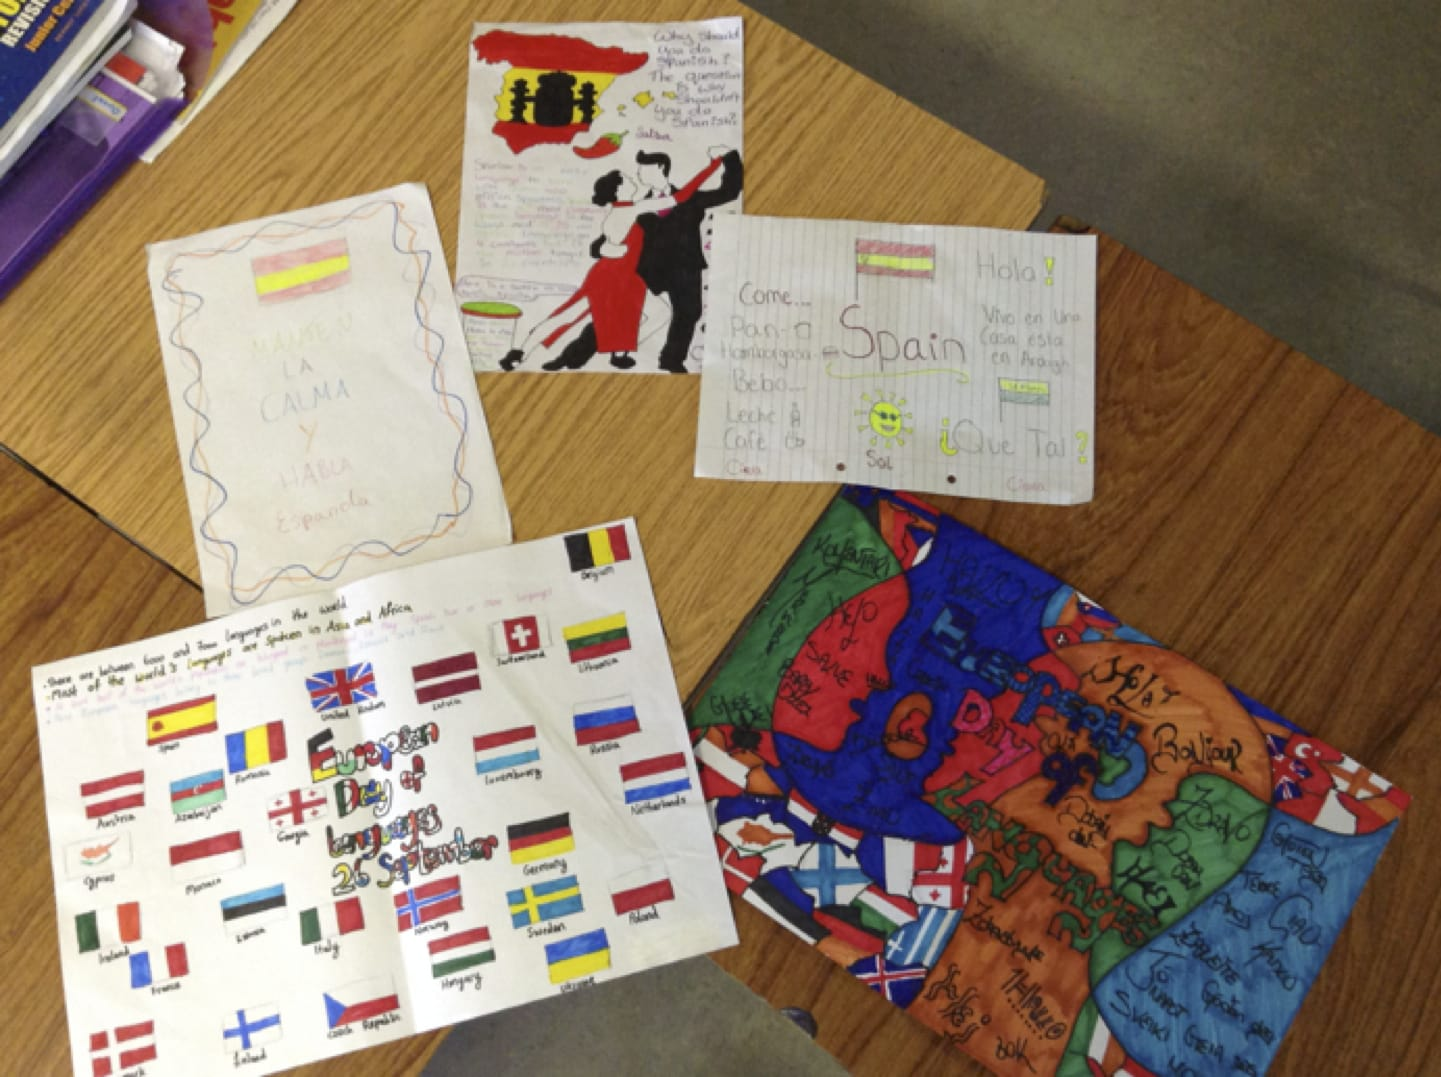 2016: A selection of Posters by the Desmond College Post Primary School Second Year Spanish Students